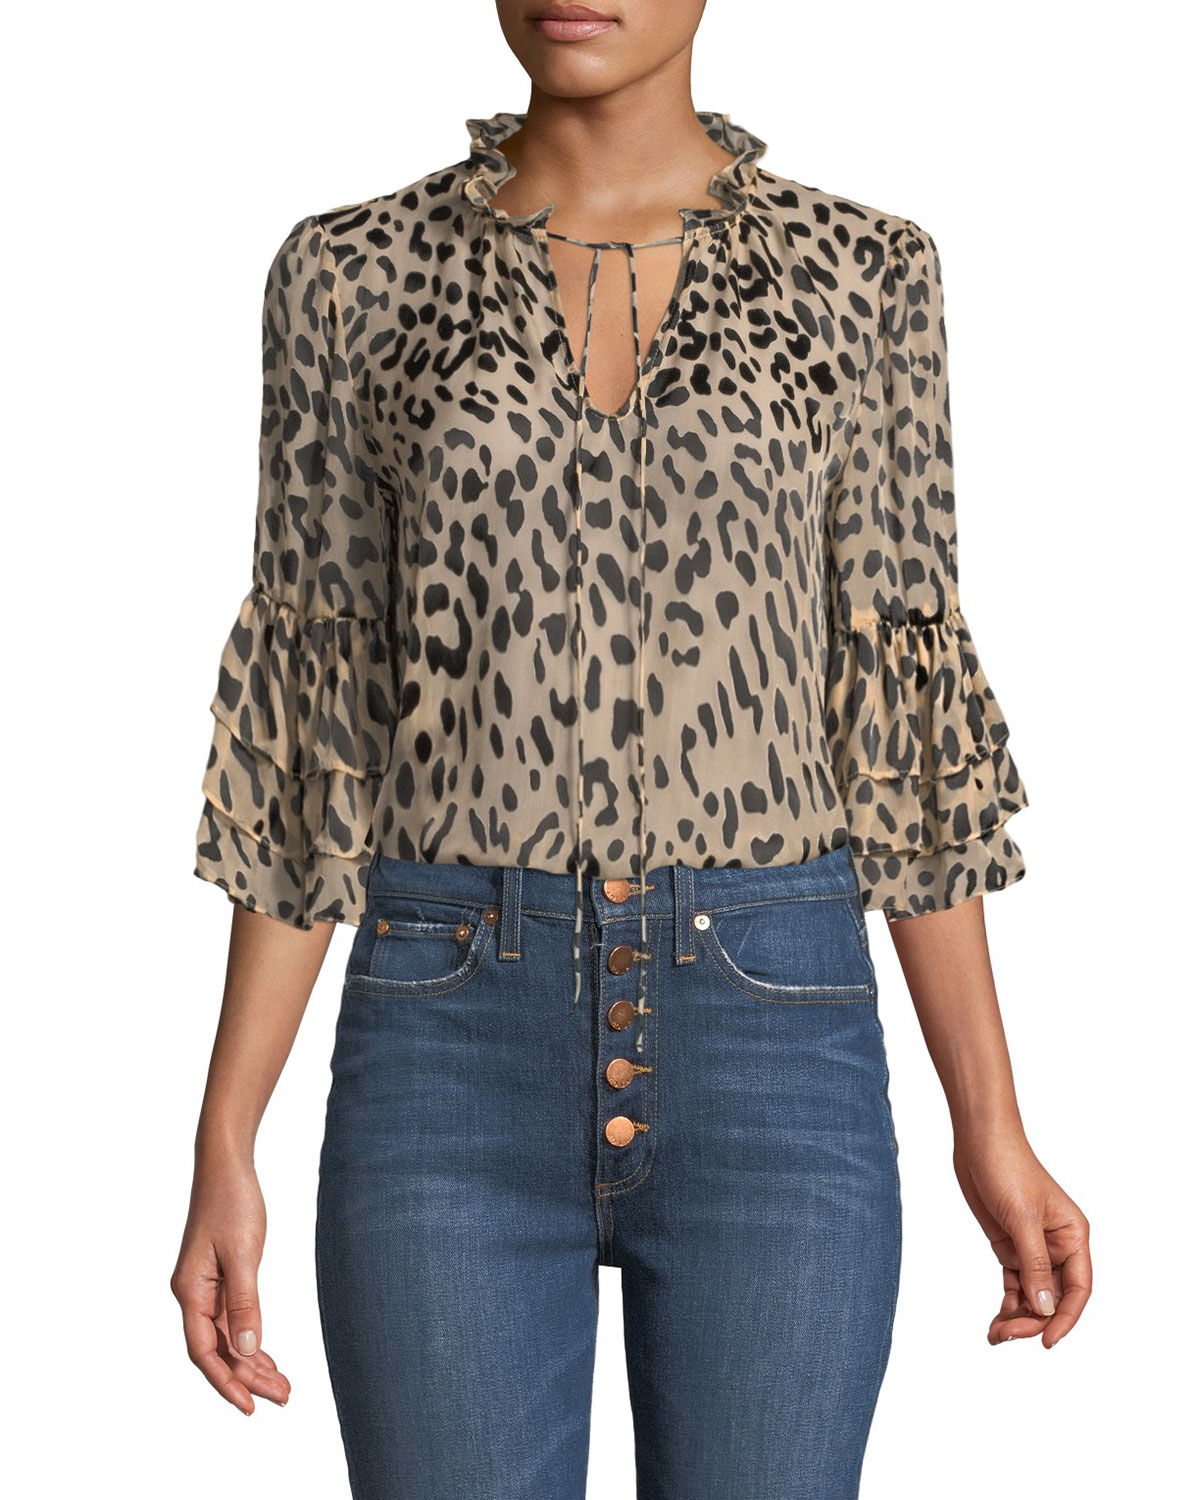 printed top with tucked in hem